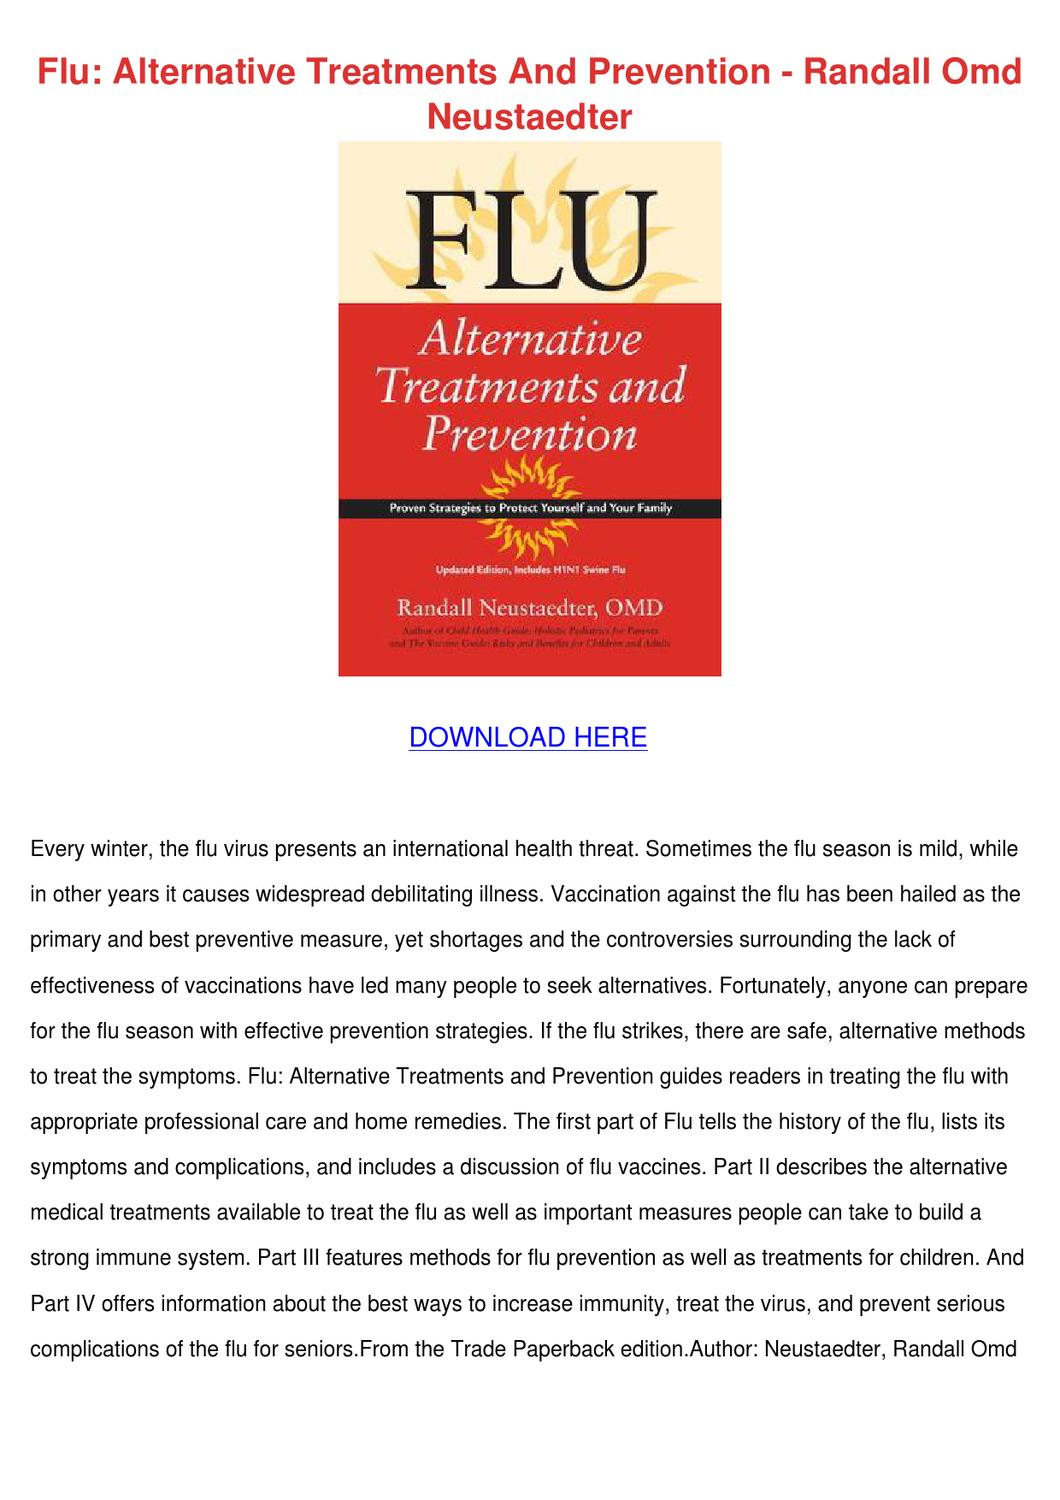 the vaccine guide by randall neustaedter pdf